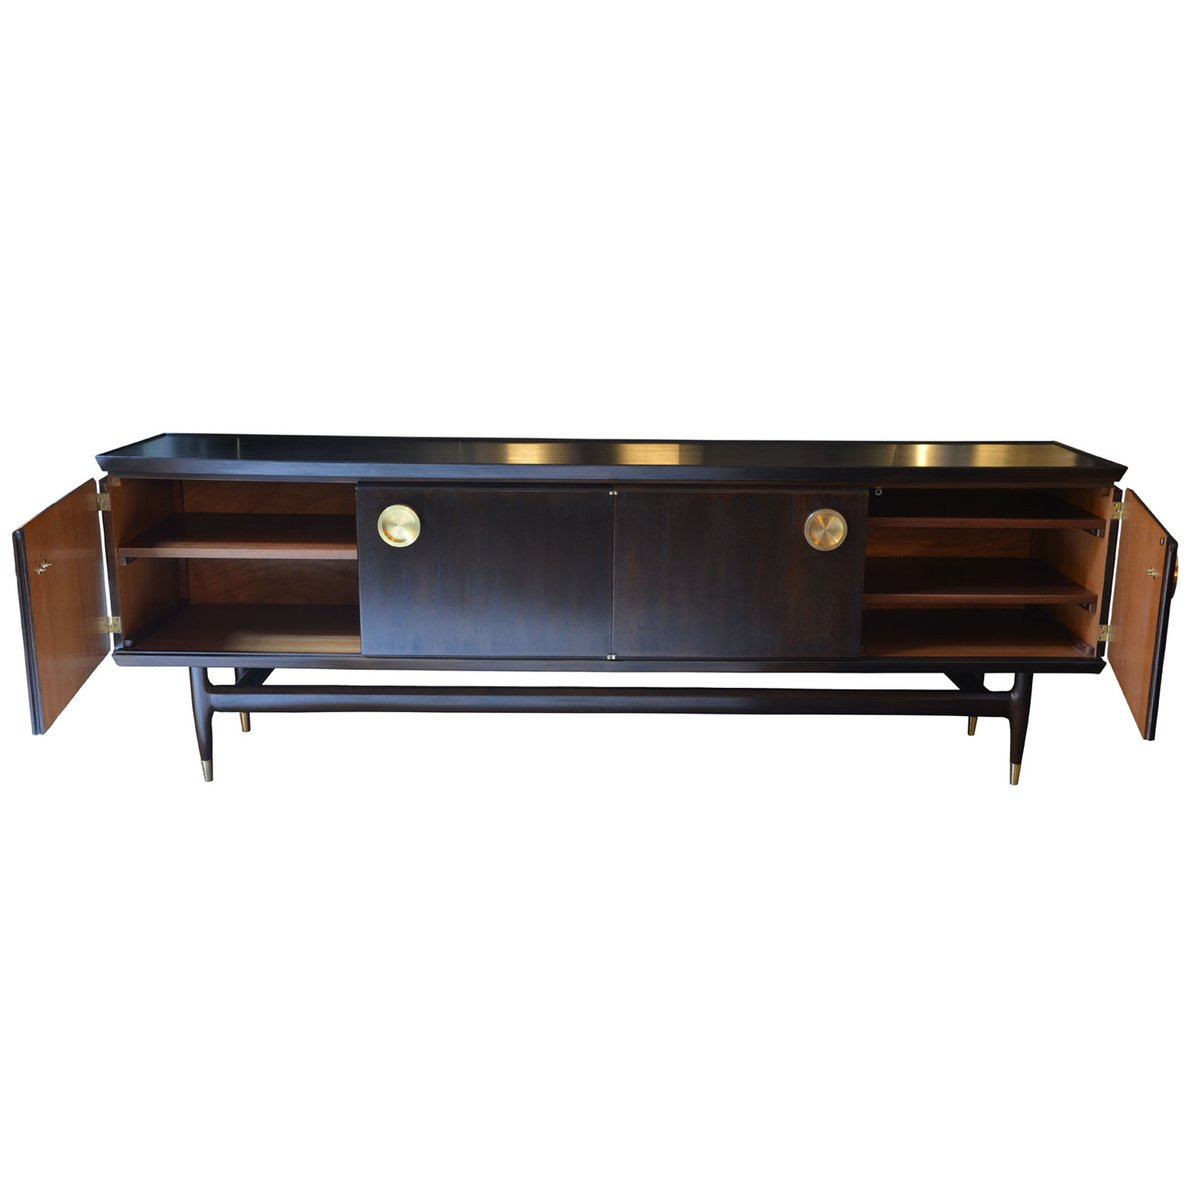 Franz sisches sideboard aus dunkler kastanie messing for Sideboard verspiegelt